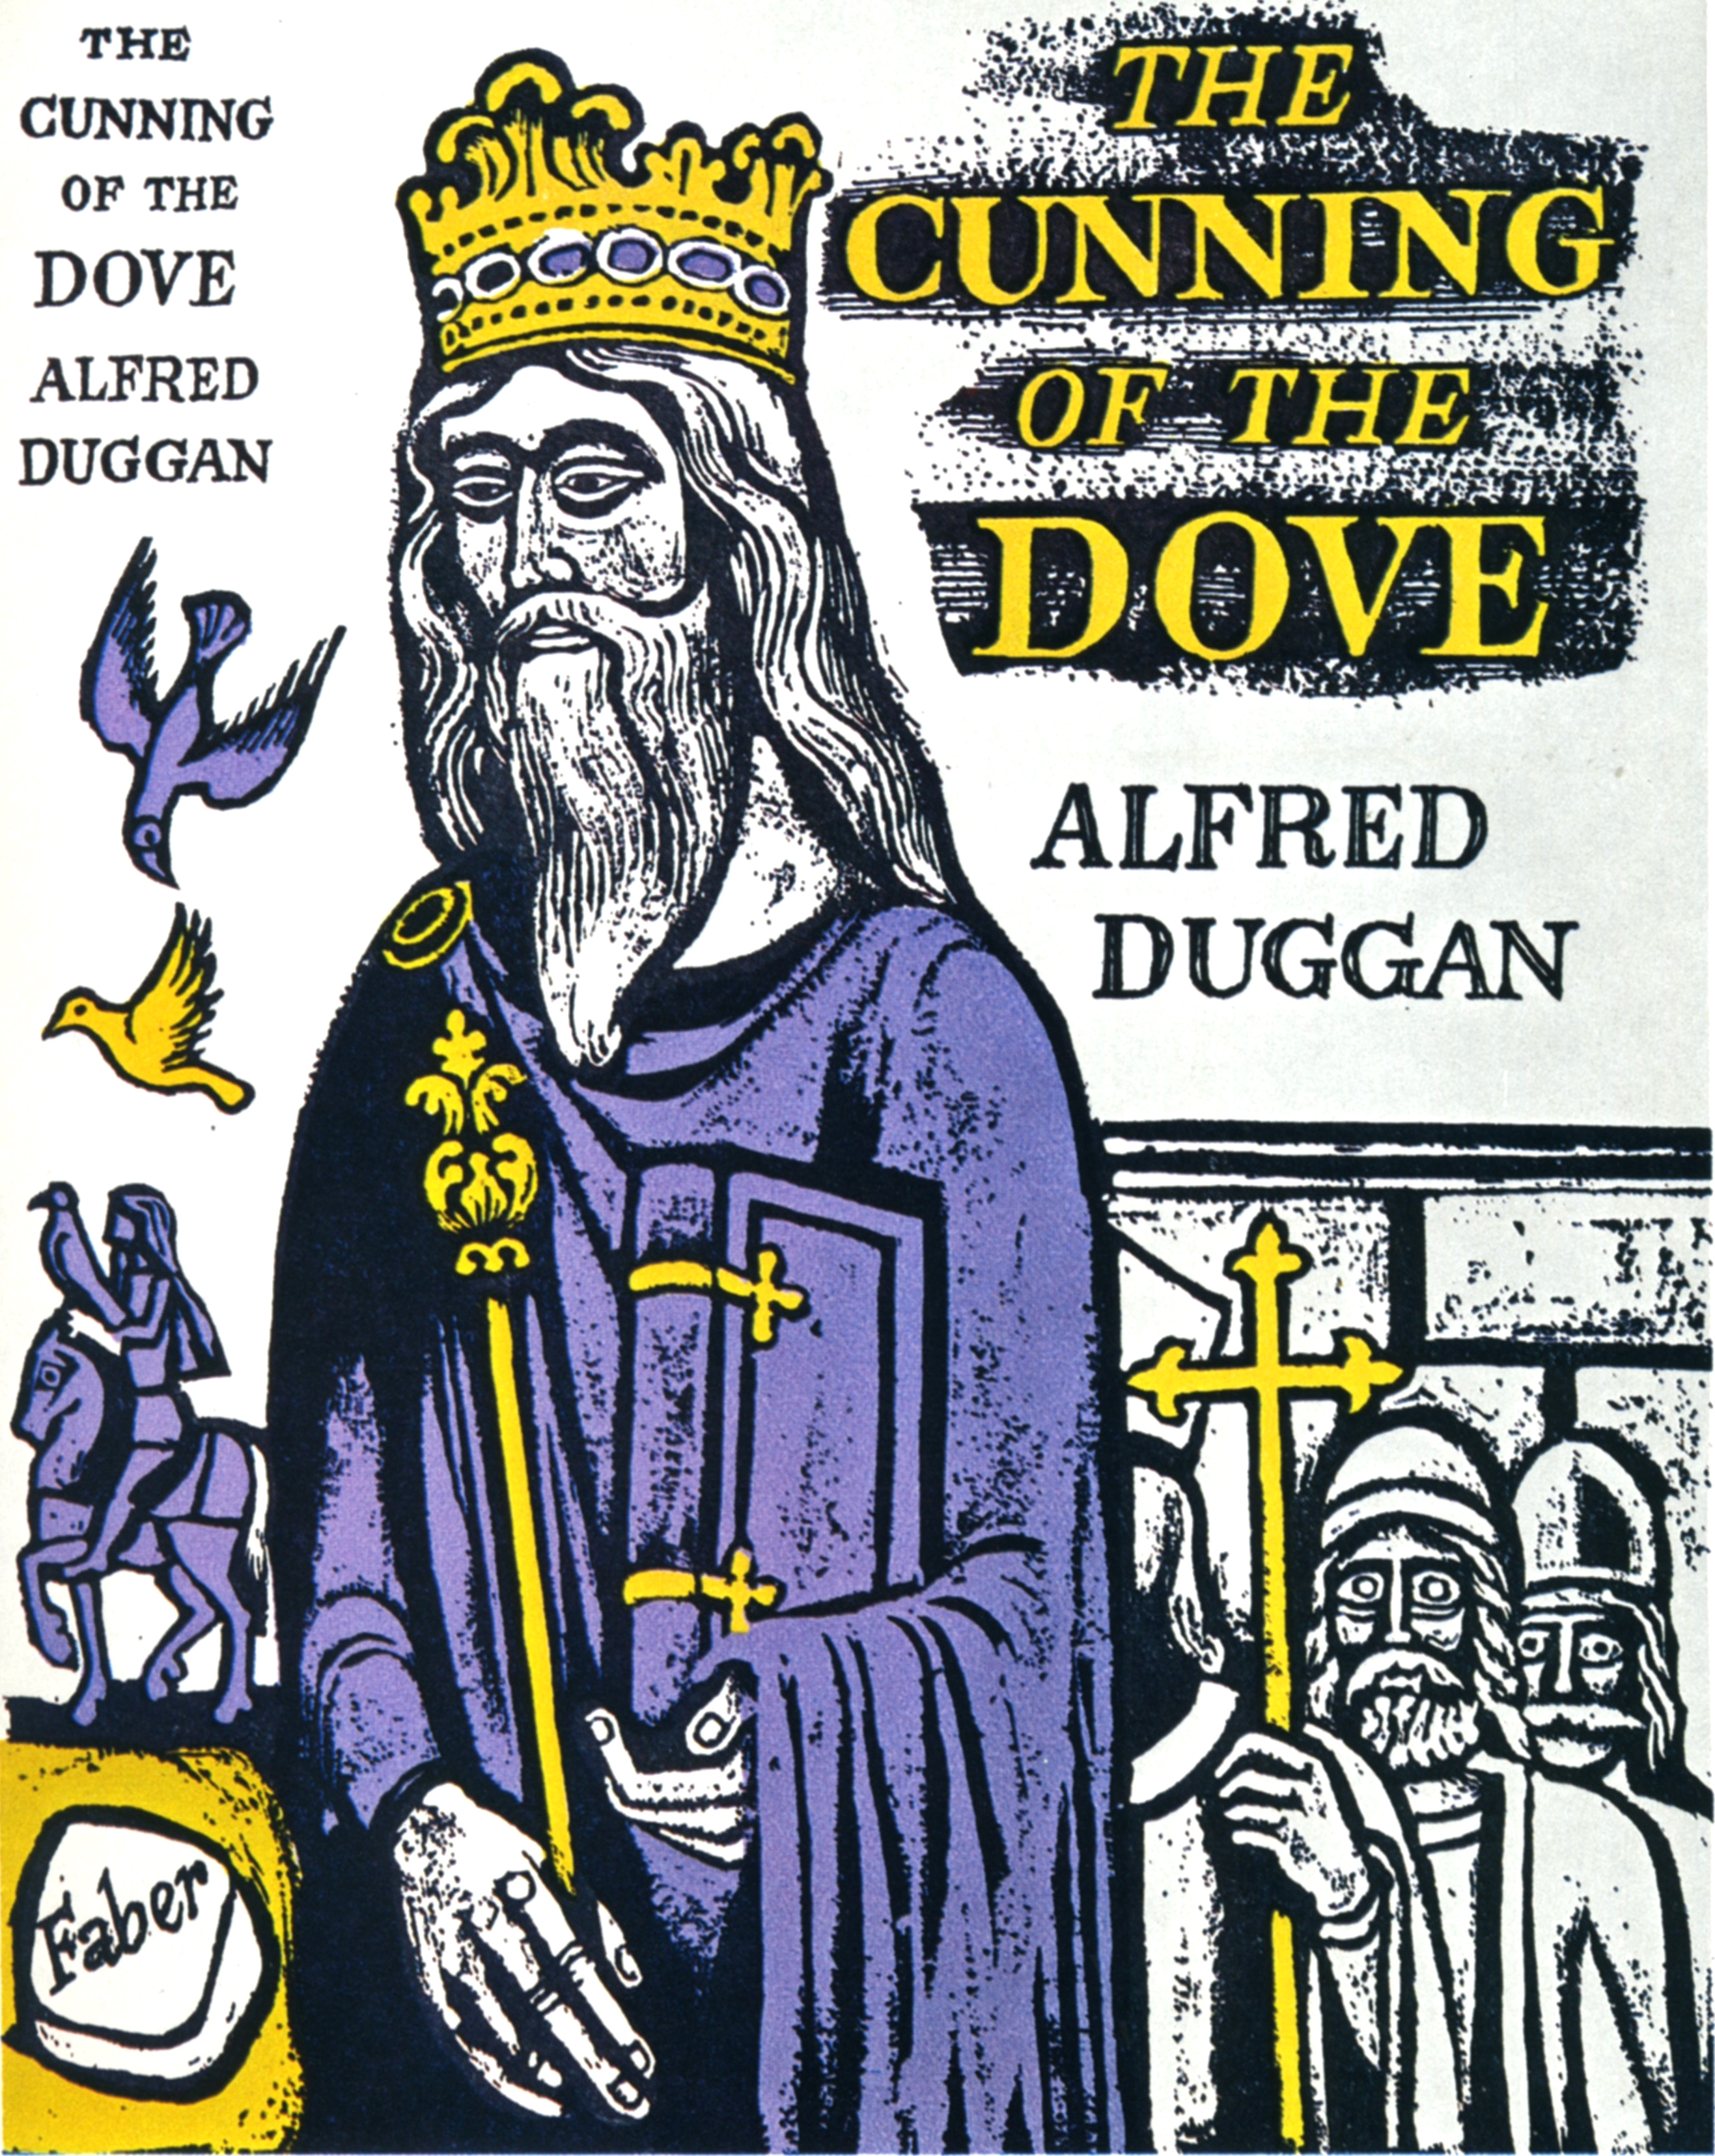 edward_bawden-graphic-designer-count-dove-cover